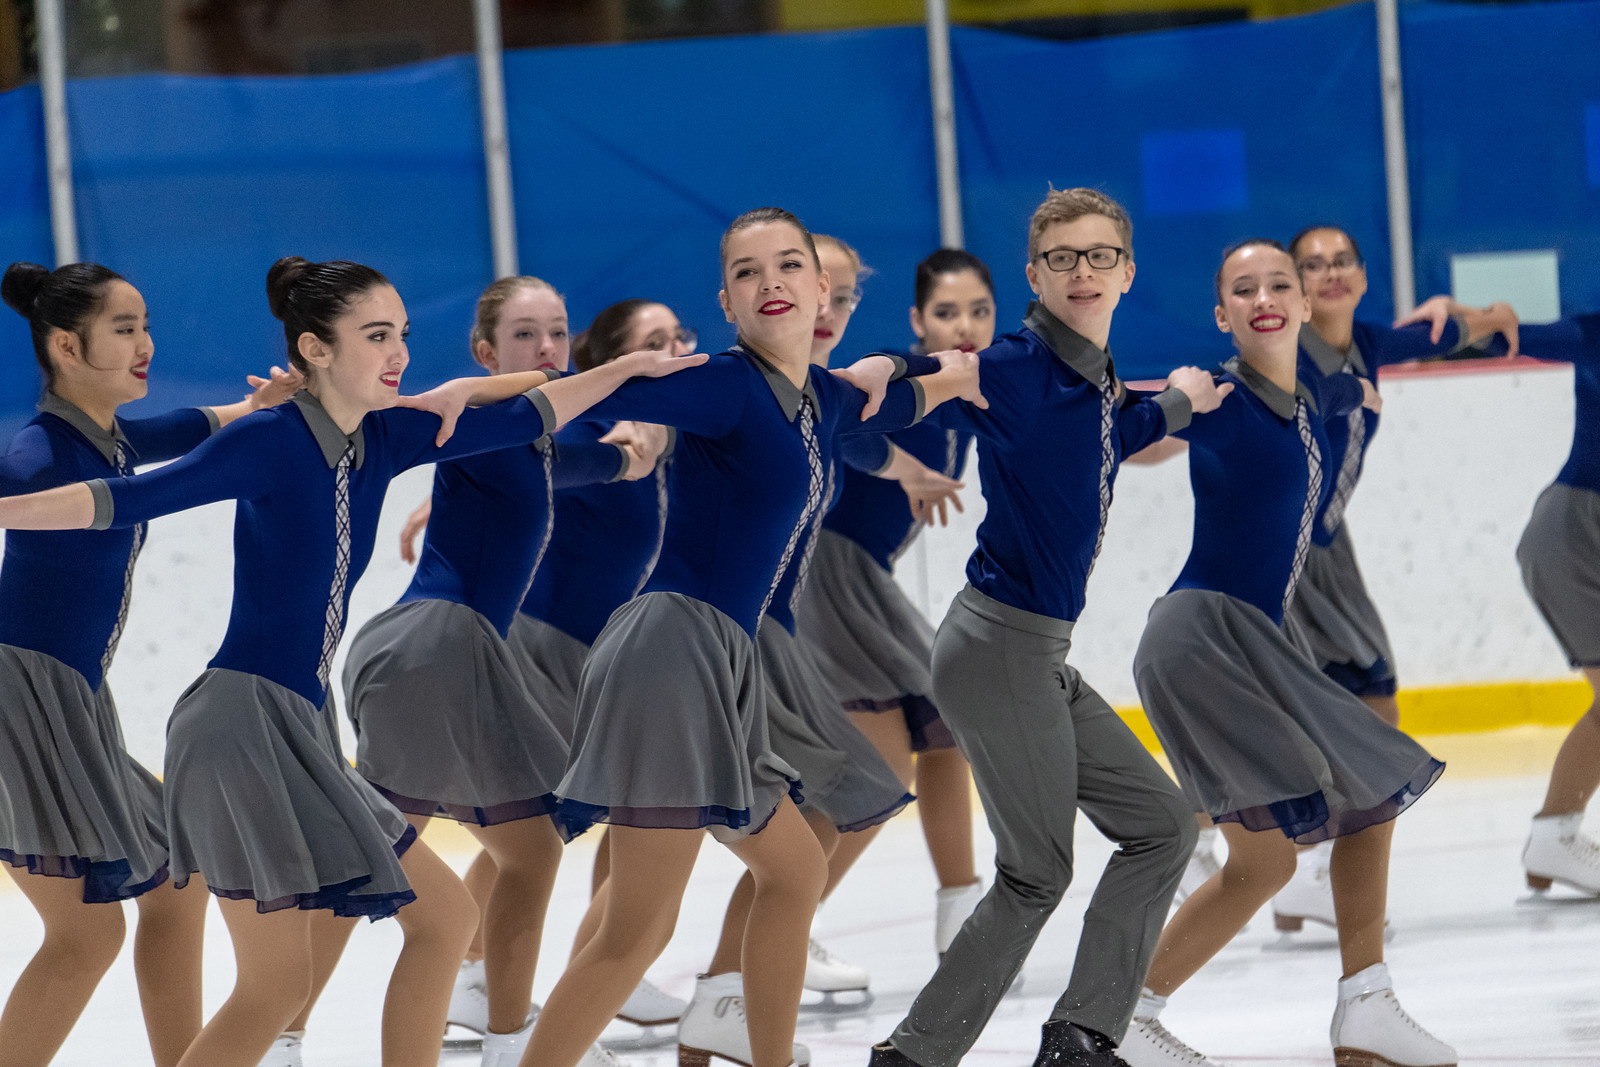 The 2018-19 Central Park Ice open juvenile line won bronze at the 2018 Terry Conners Synchro Open, placed sixth at the 2019 Colonial Classic, and placed seventh at the 2018 Essex Synchro Classic. The line won Eastern Sectionals in 2016.